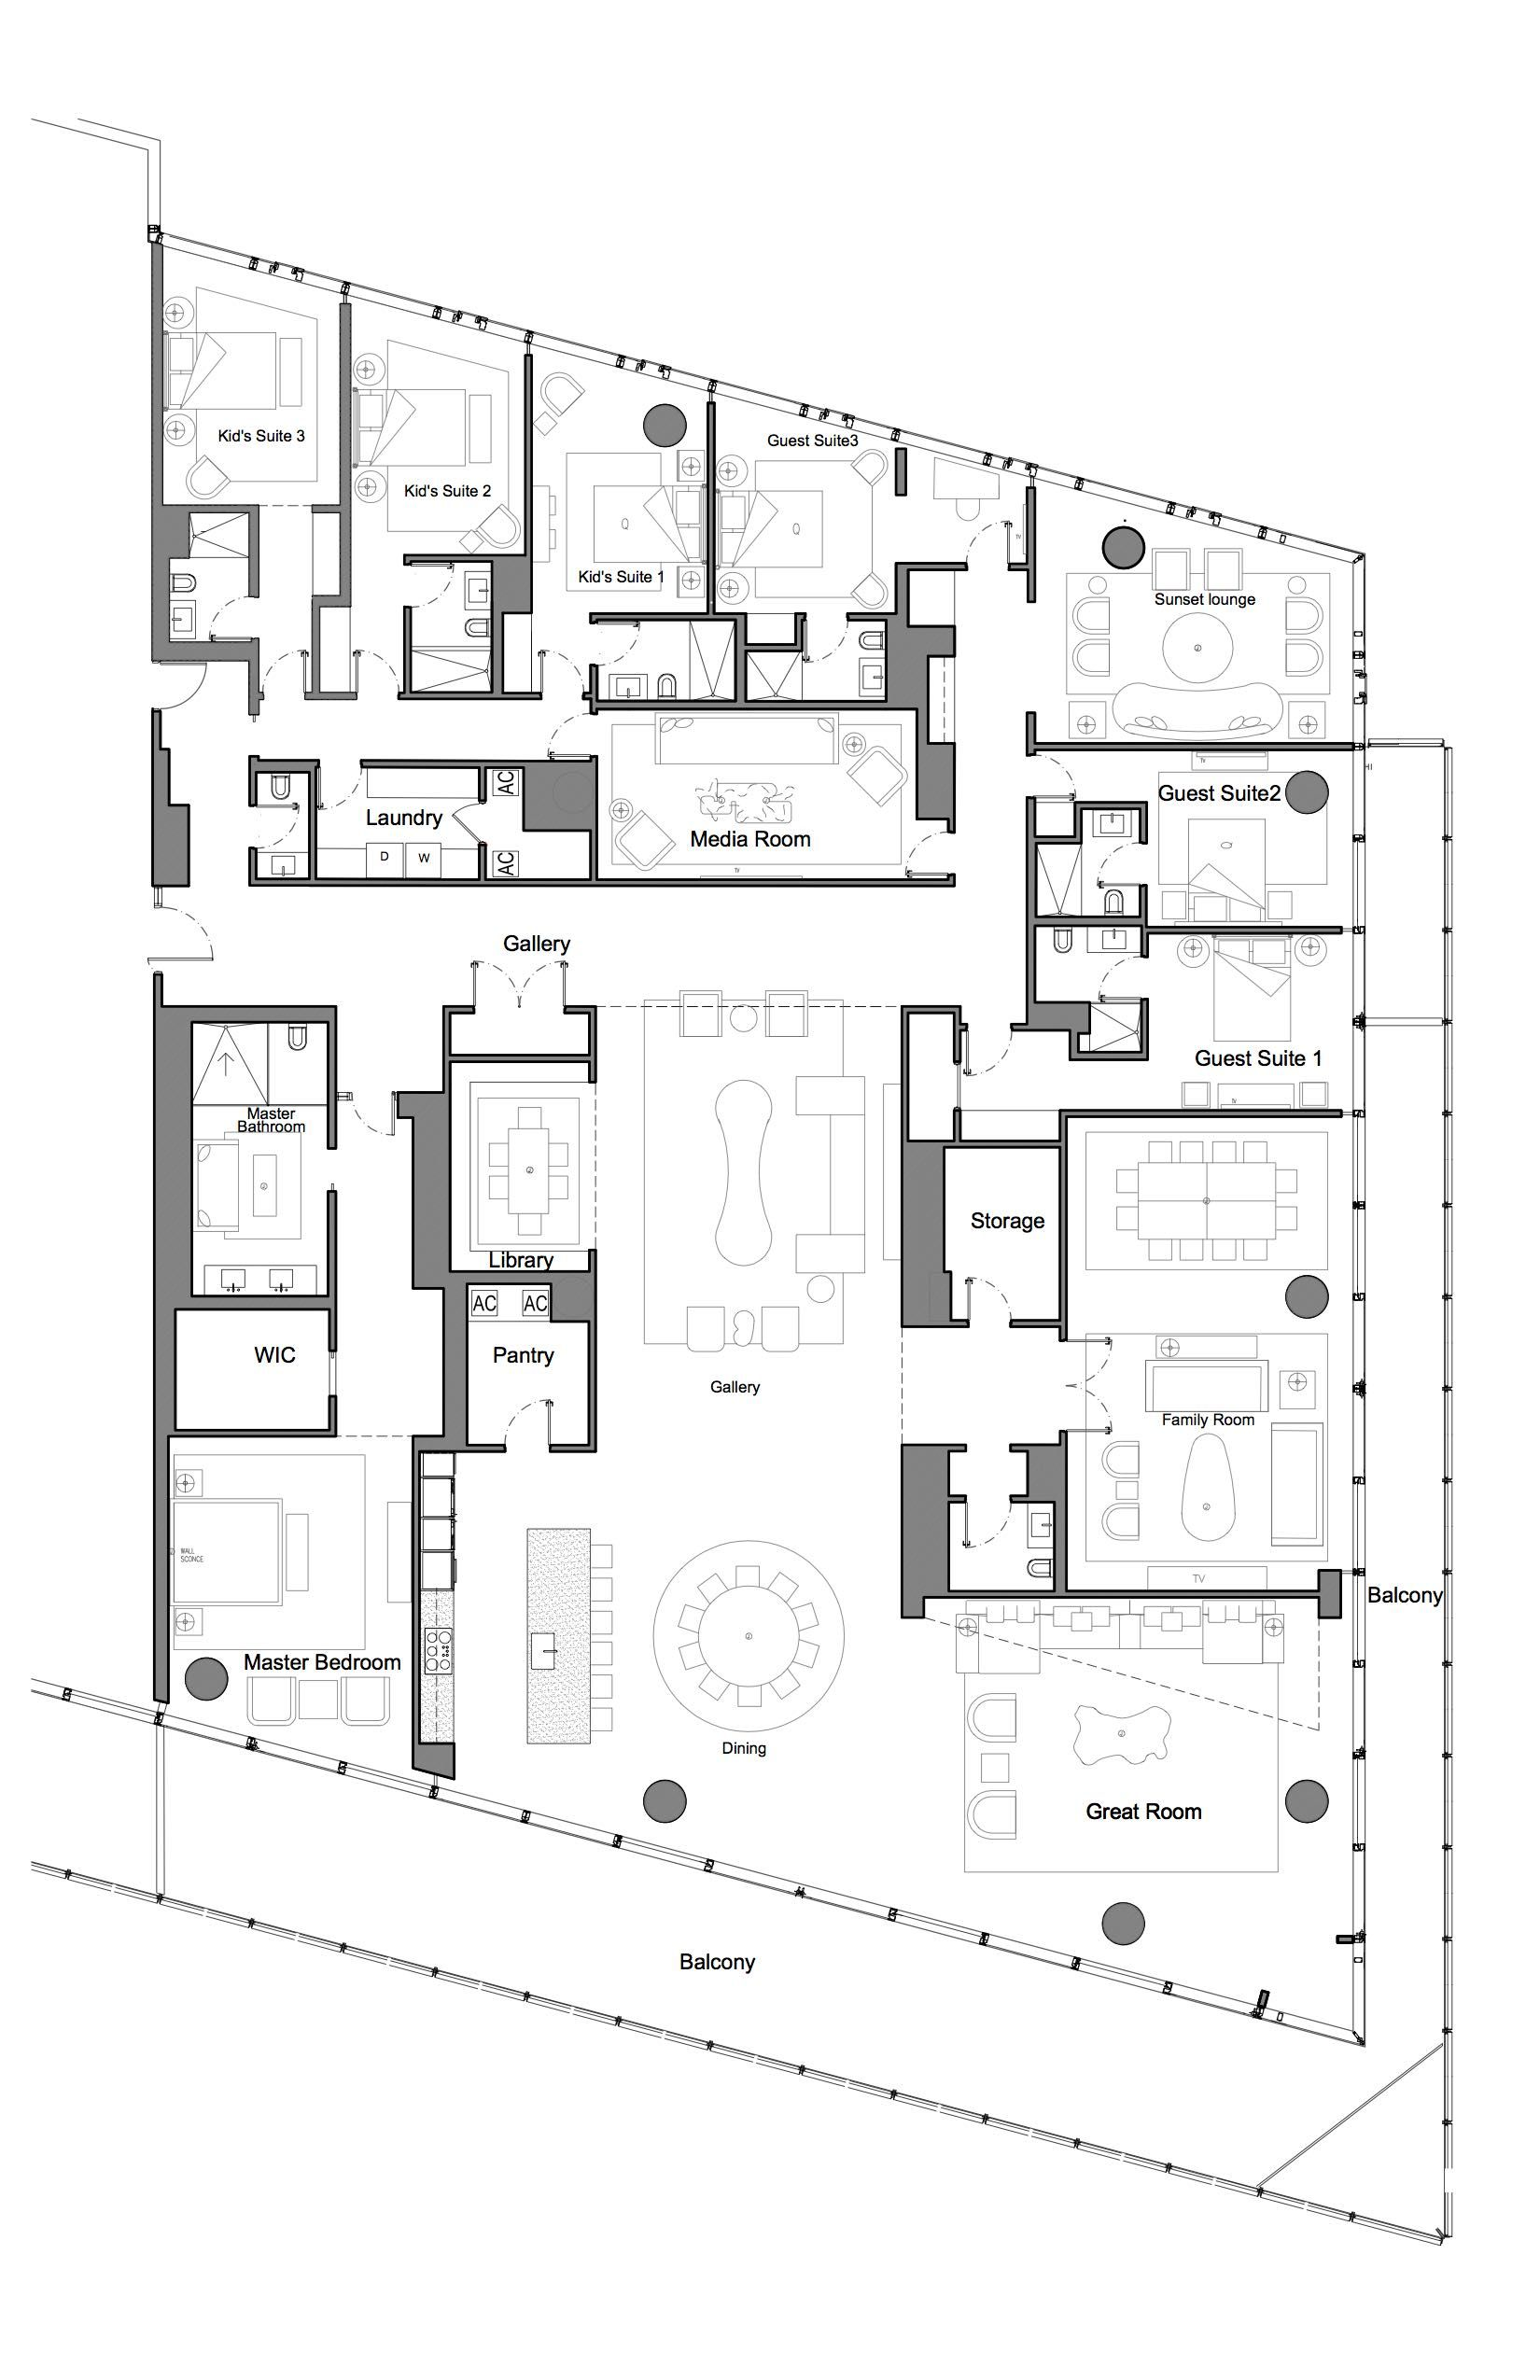 Hsj Archiecture Hotel Floor Plan Condo Floor Plans Family House Plans